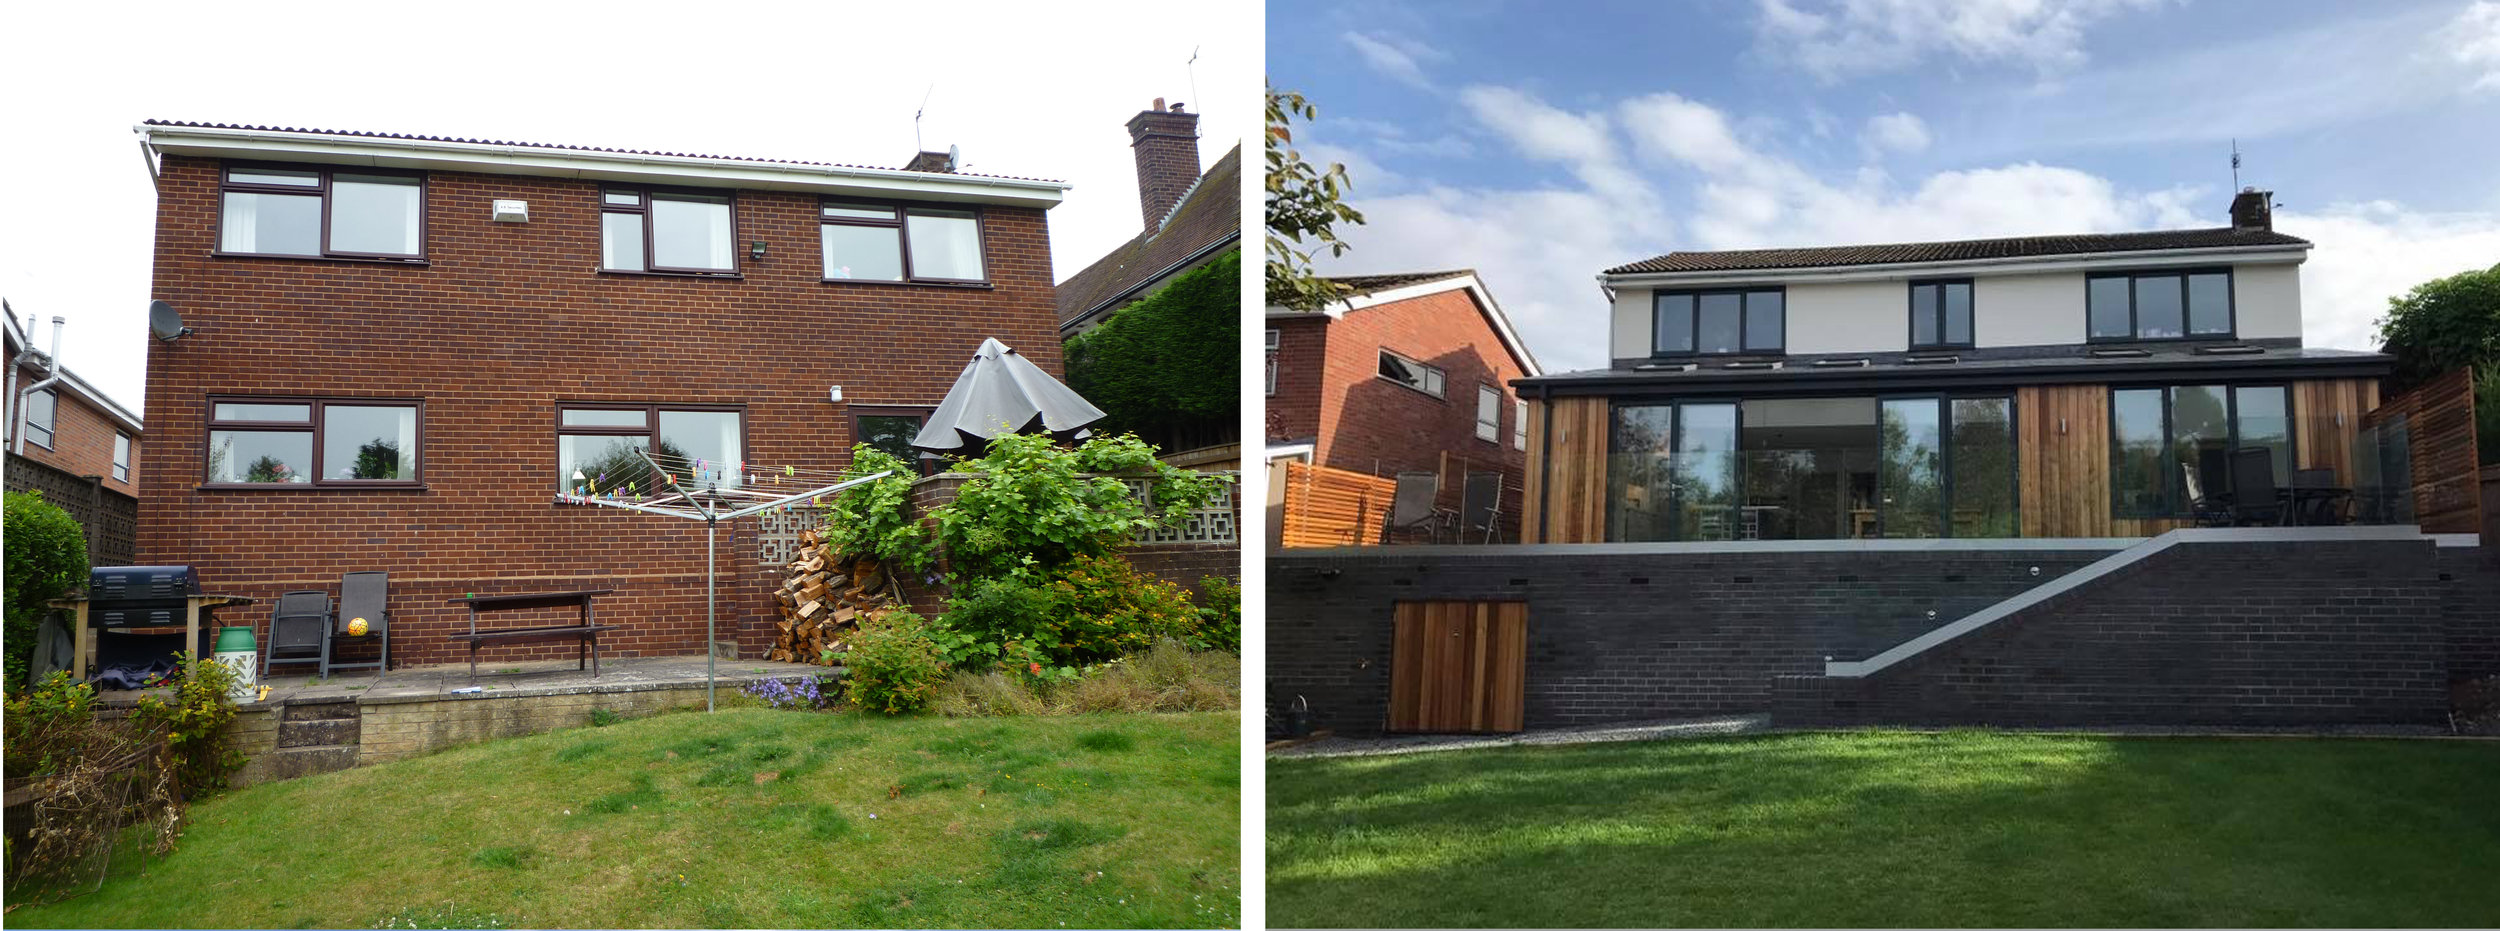 comparison image, showing before and after images of the exterior to the rear